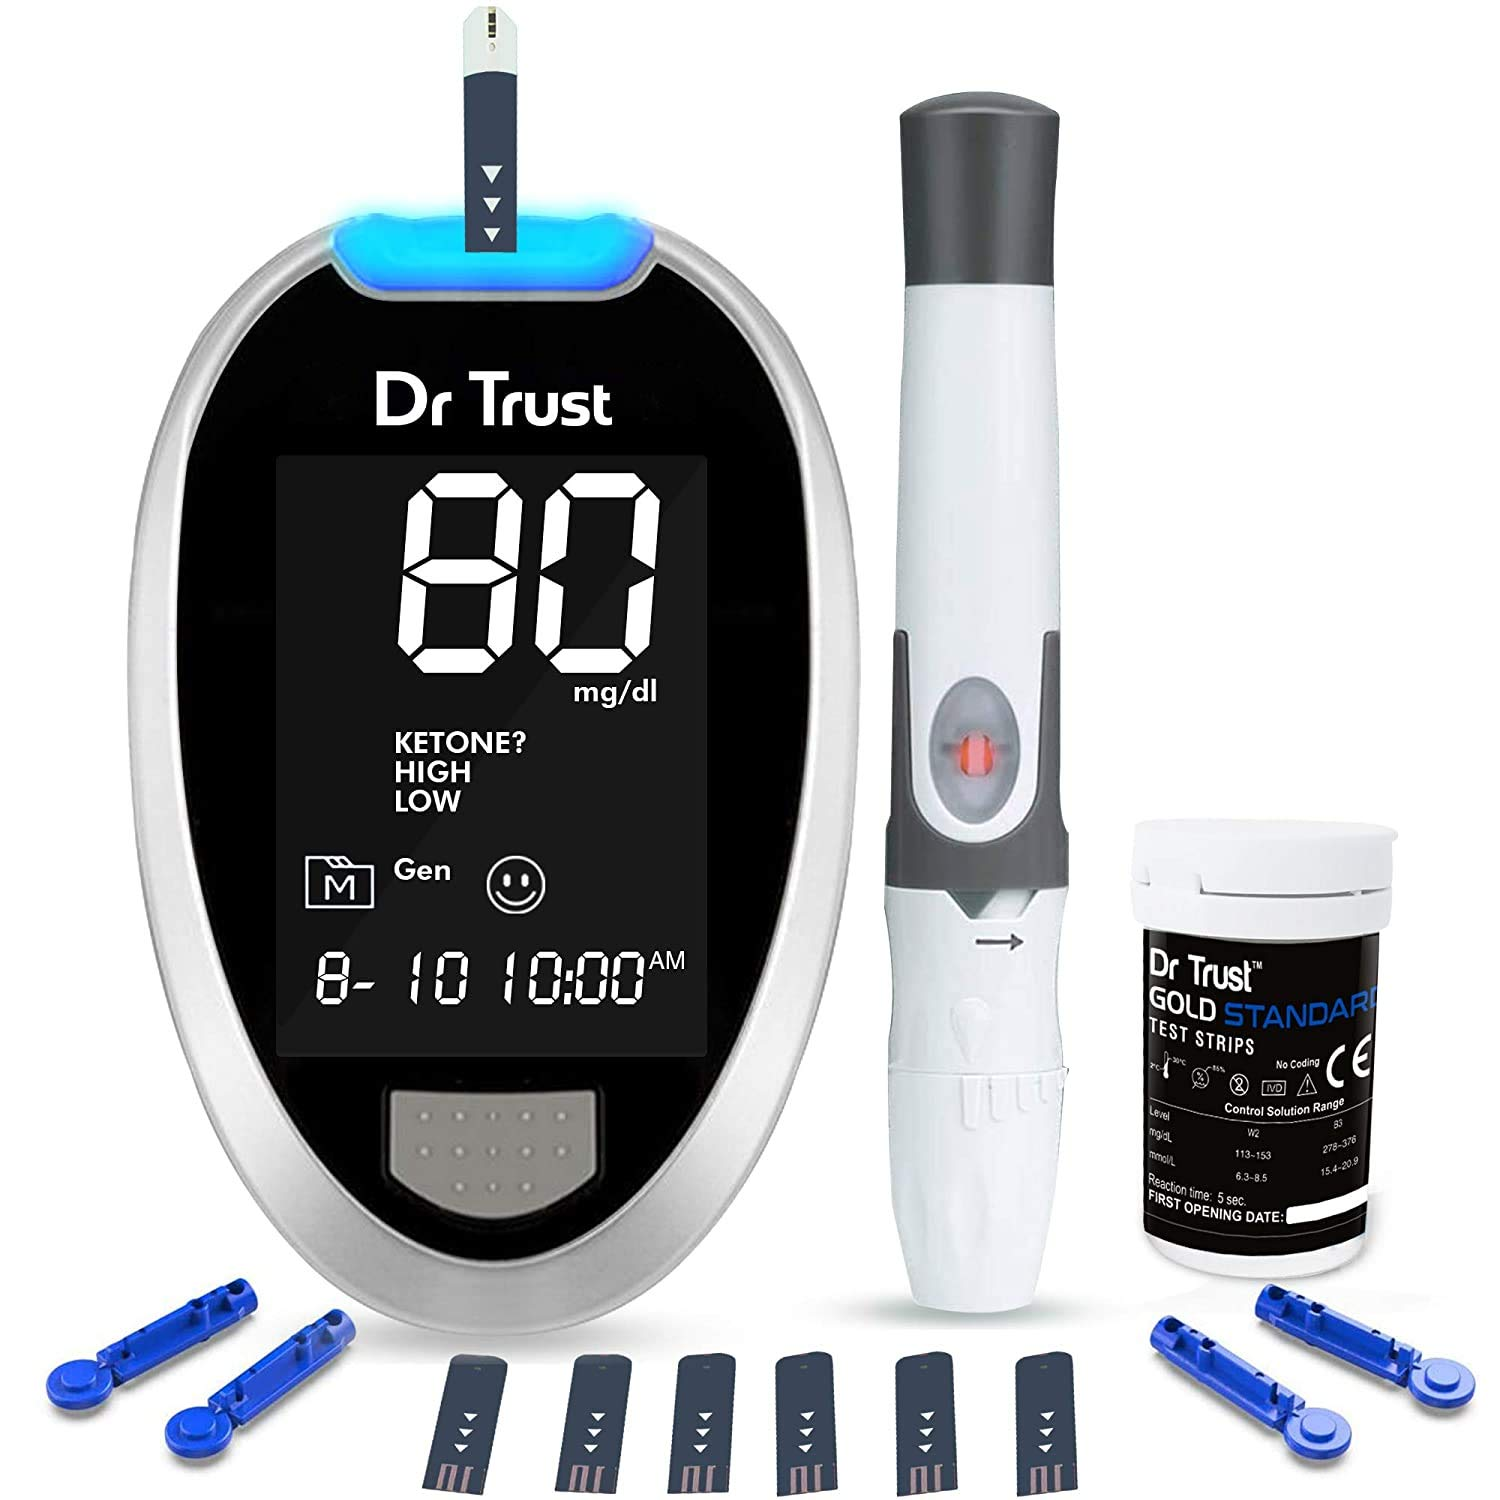 Dr TrustFully Automatic Blood Sugar Testing Glucometer Machine with 10 Strips